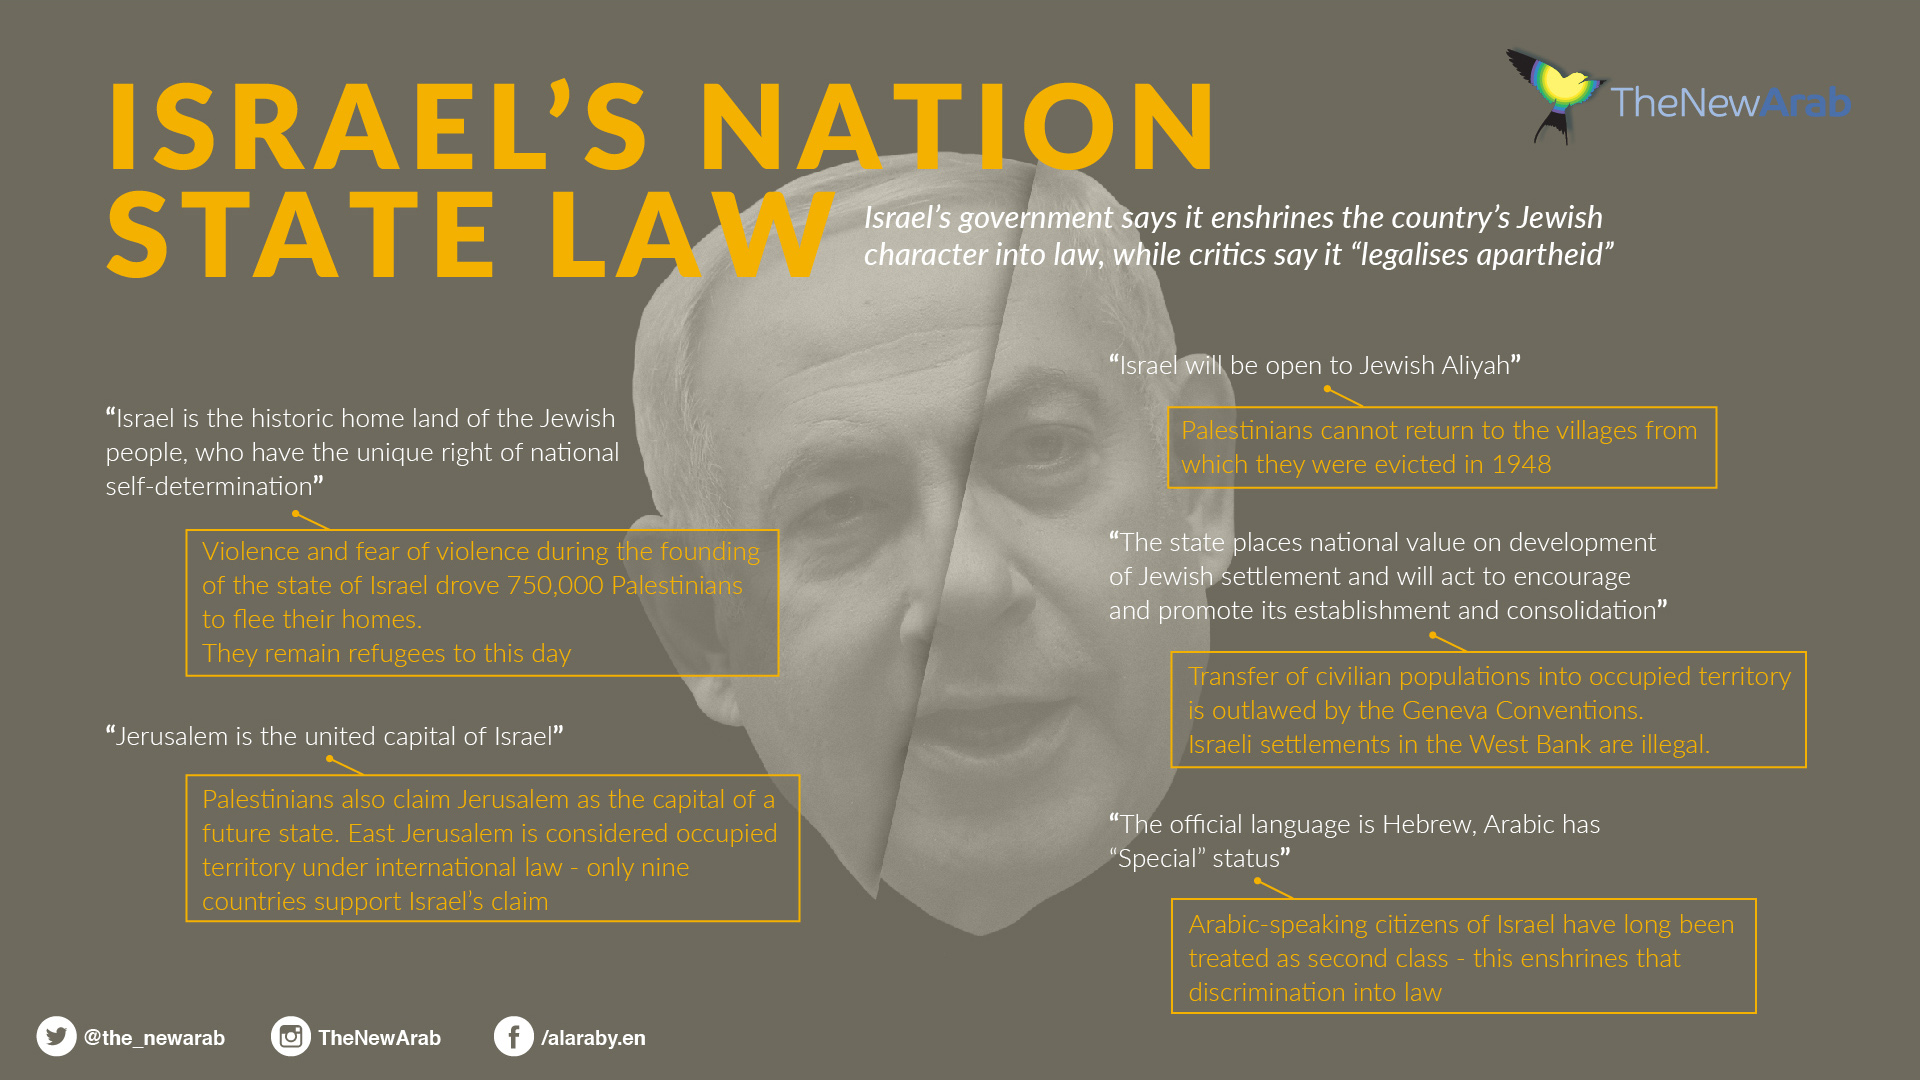 Israel's nation state law